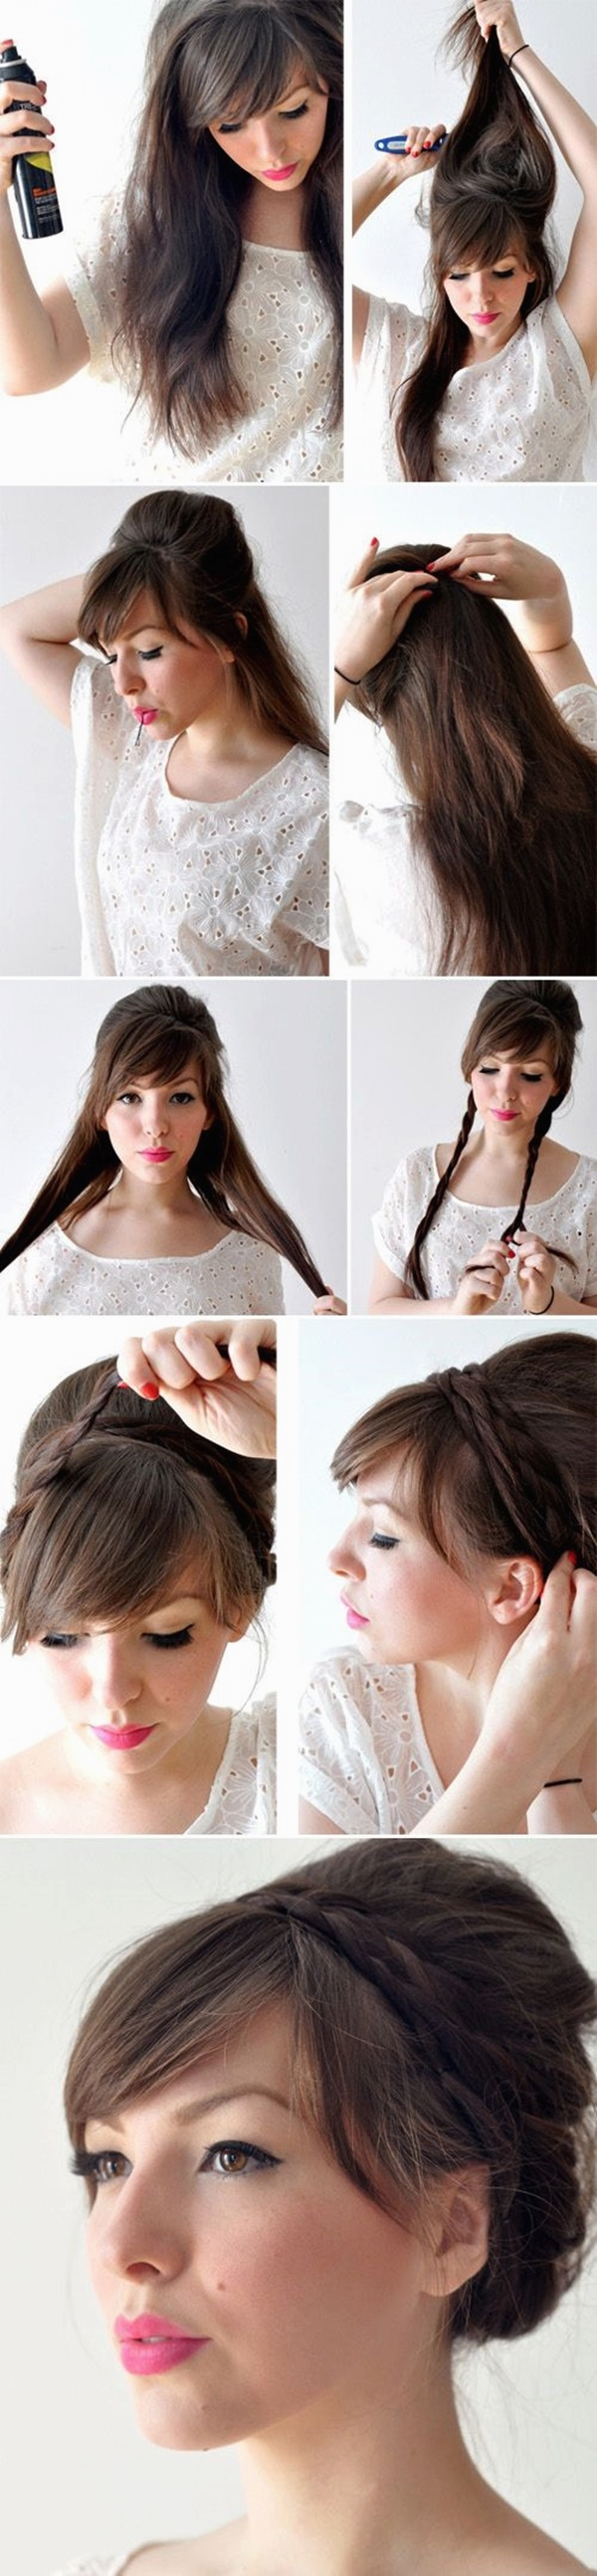 Easy Step By Step Hairstyles for Long Hair10